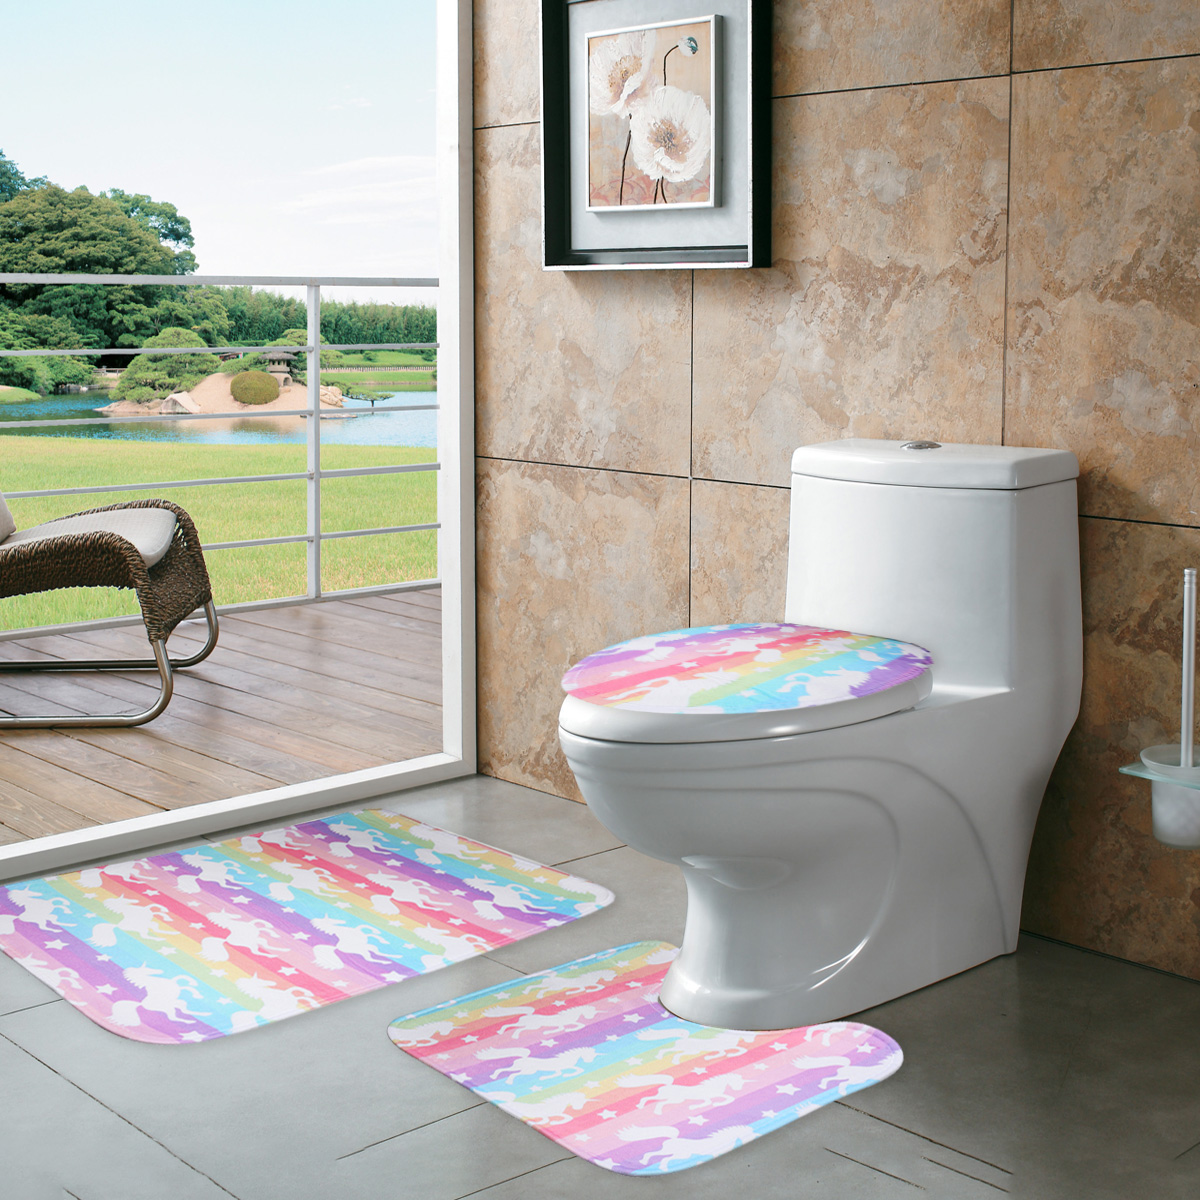 3Pcs Set Anti-Slip Bathroom Pedestal Rug + Lid Toilet Cover + Bath Mat Non-Slip Pedestal Rug Lid Toilet Cover Bath Mat ...